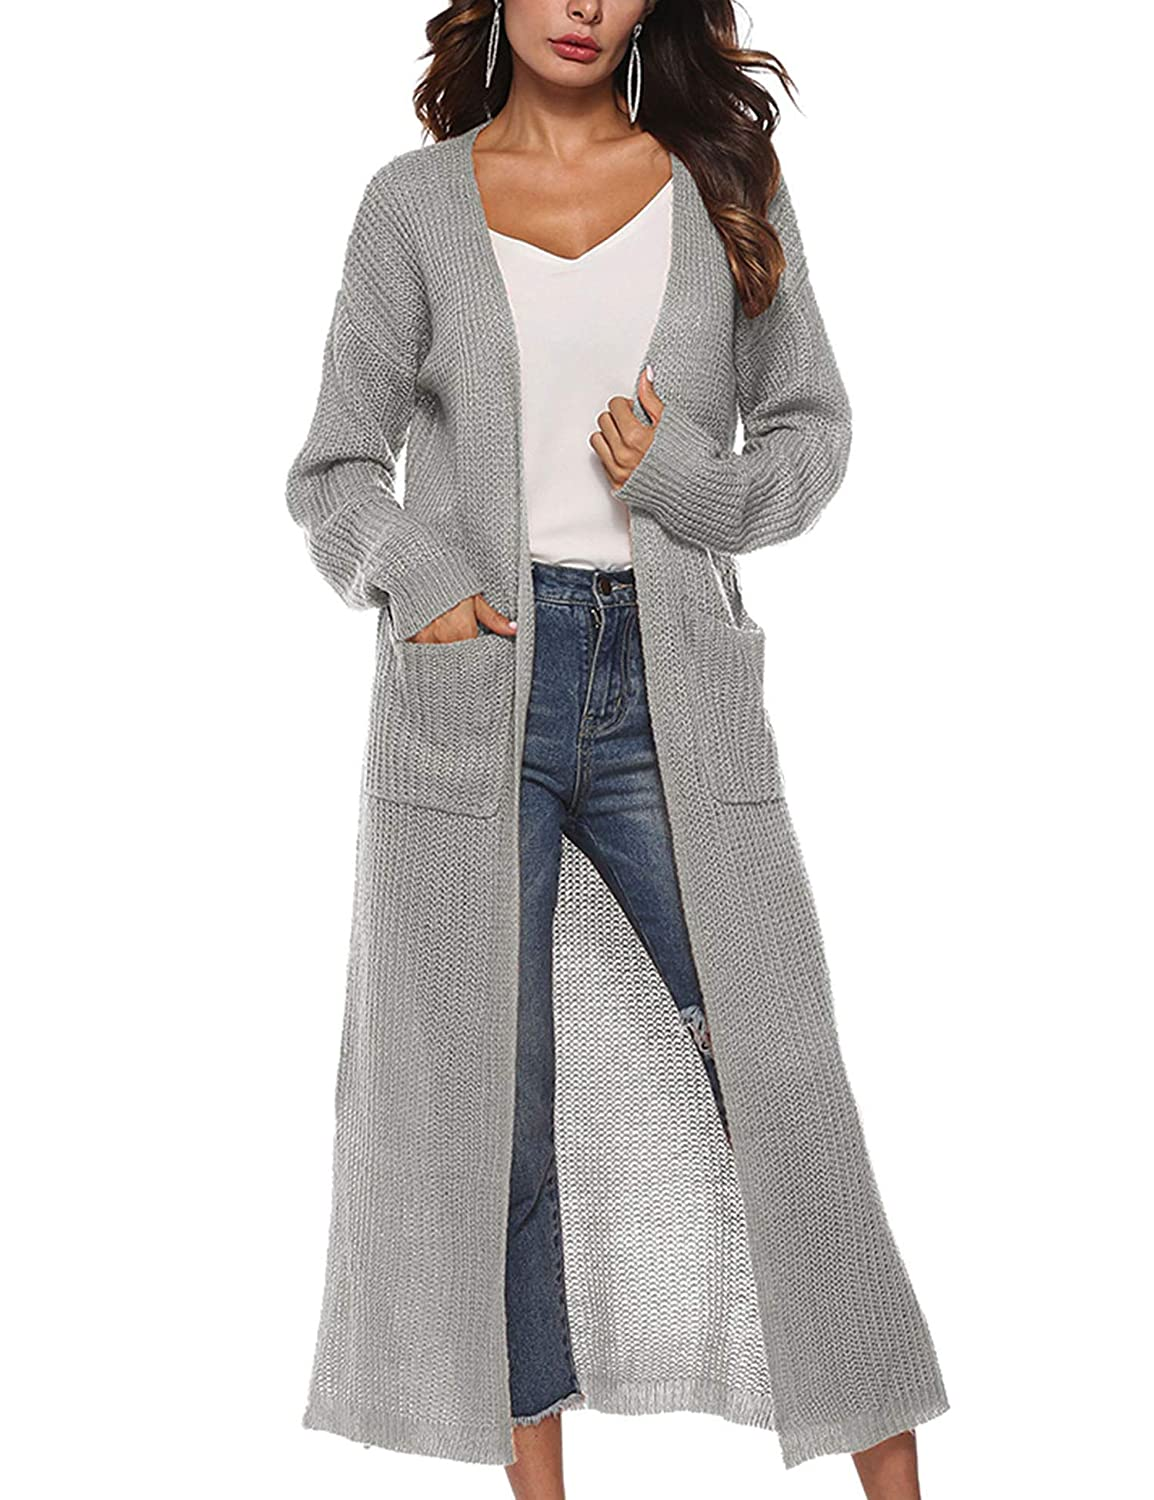 WISREMT Women's Long Sleeve Irregular Split Thick Sweater Cardigan with Pocket